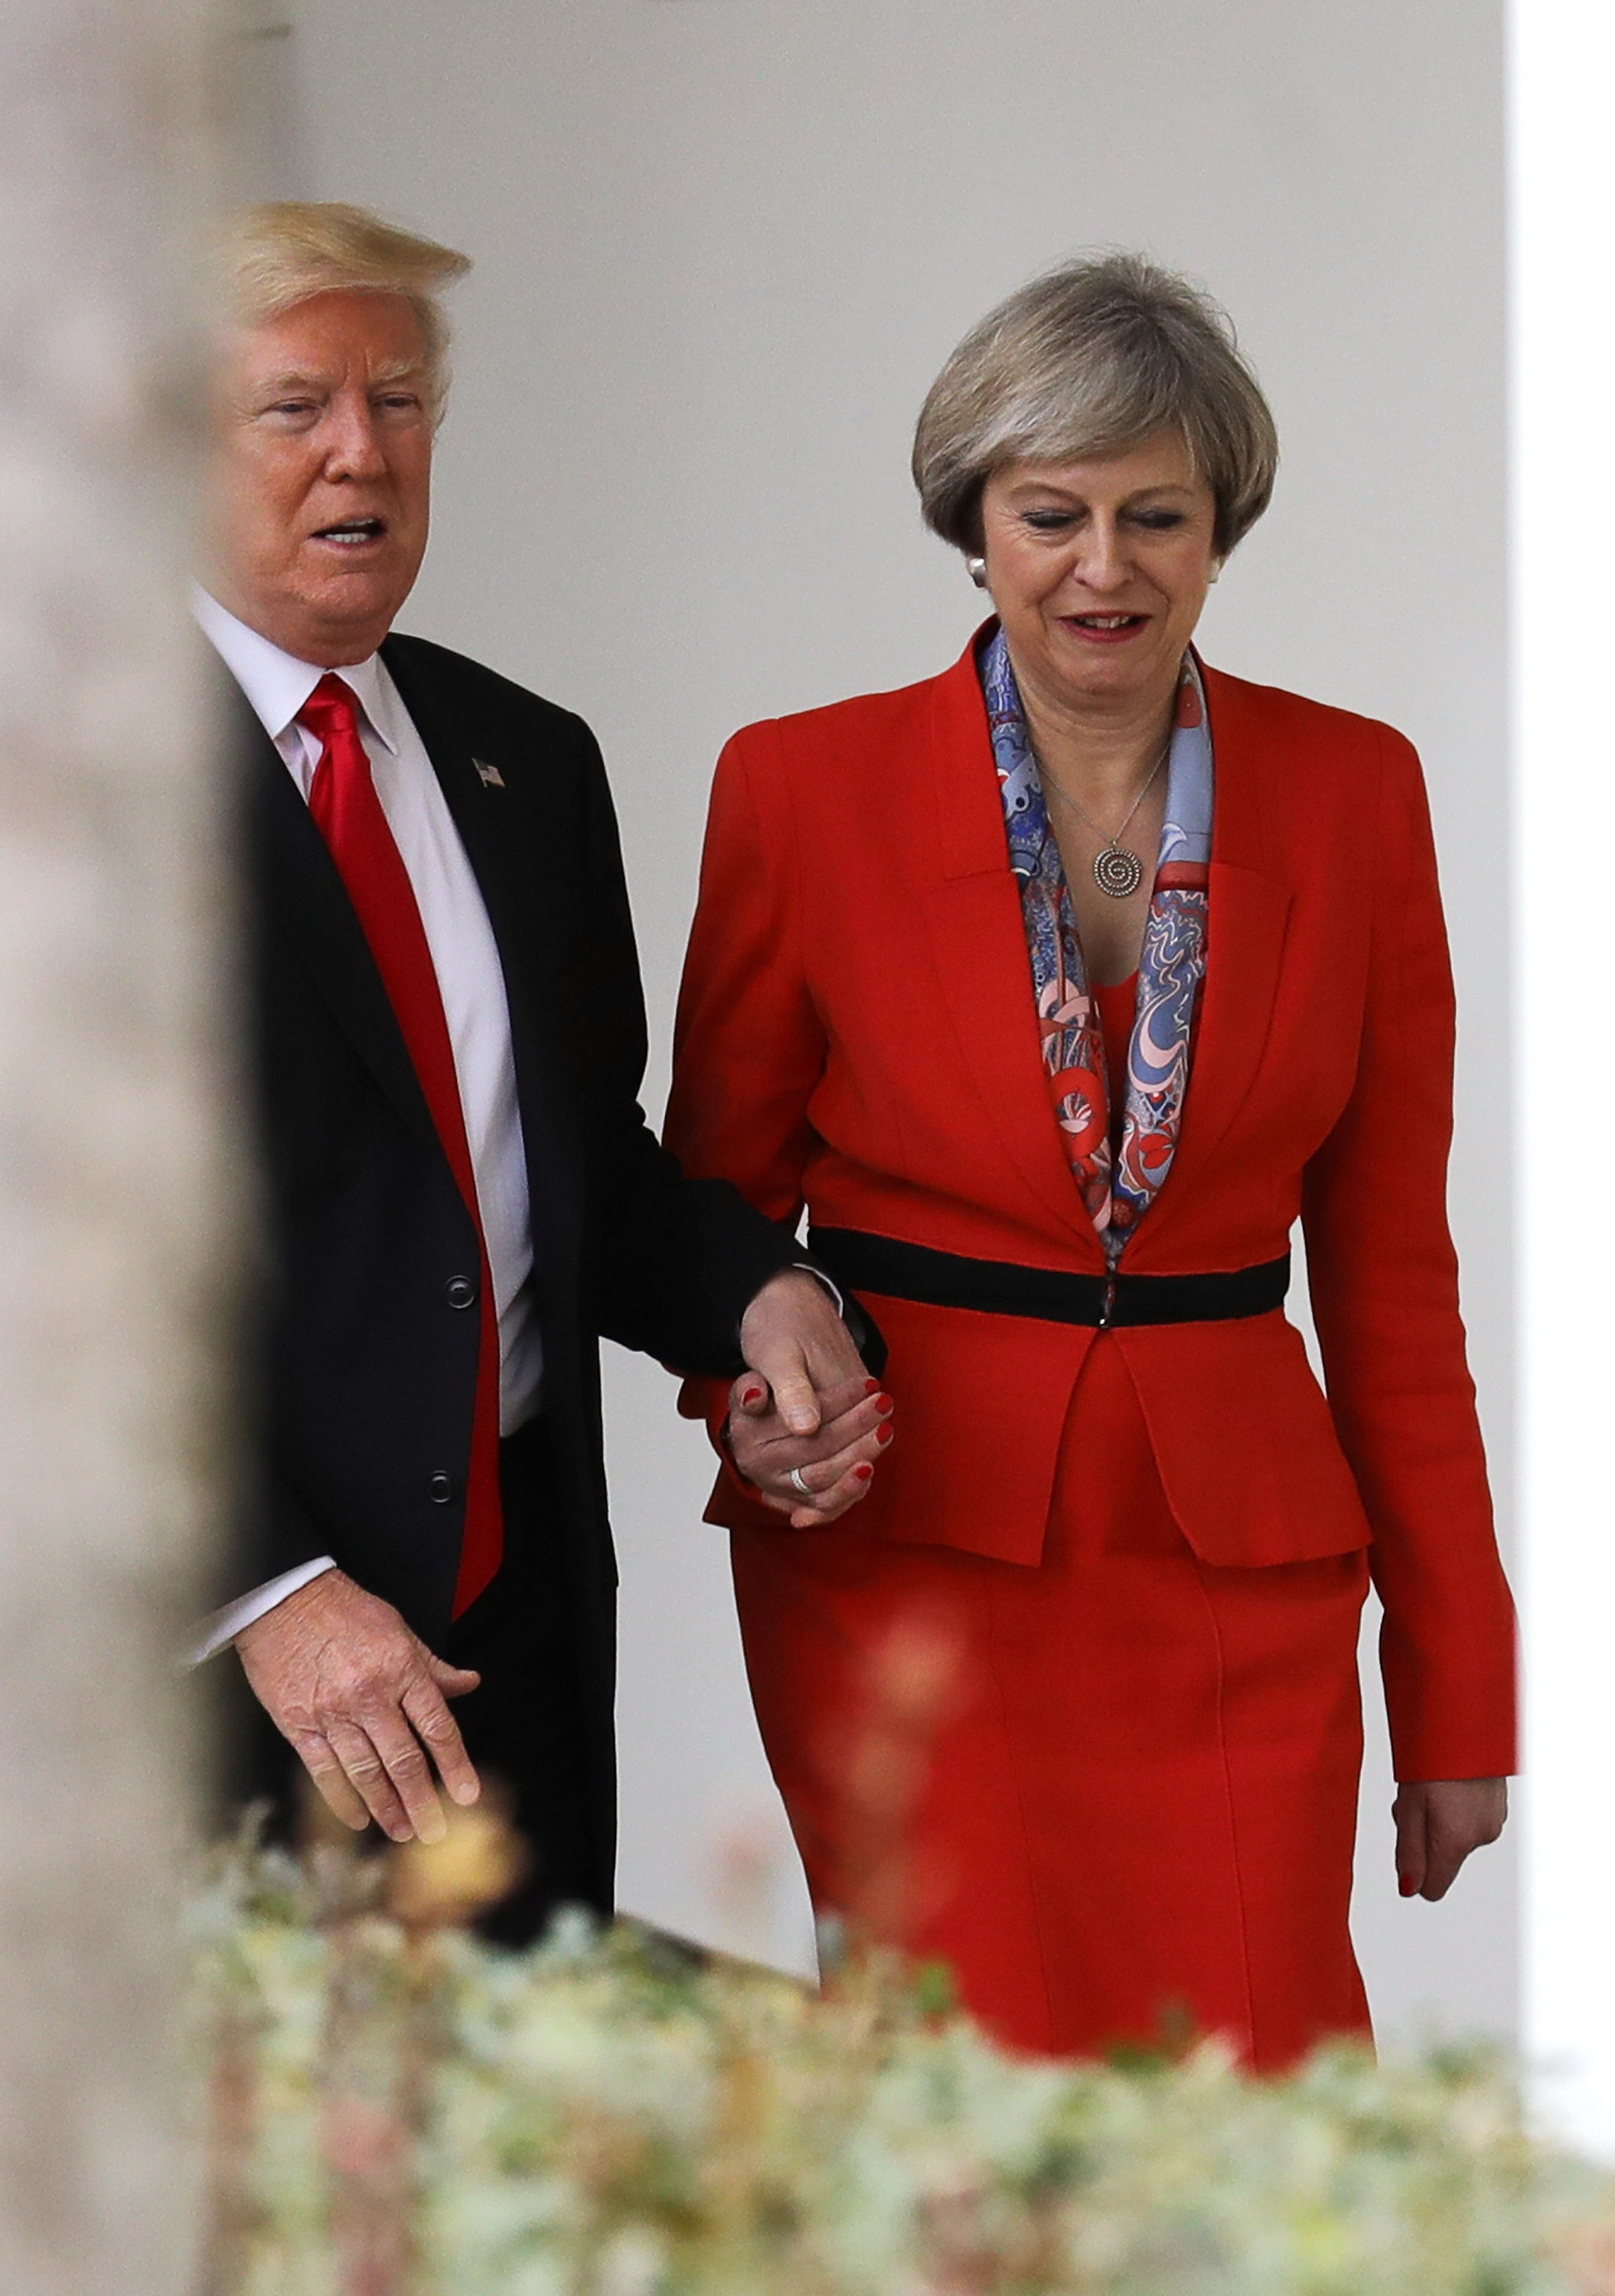 President Trump and Theresa May in the White House